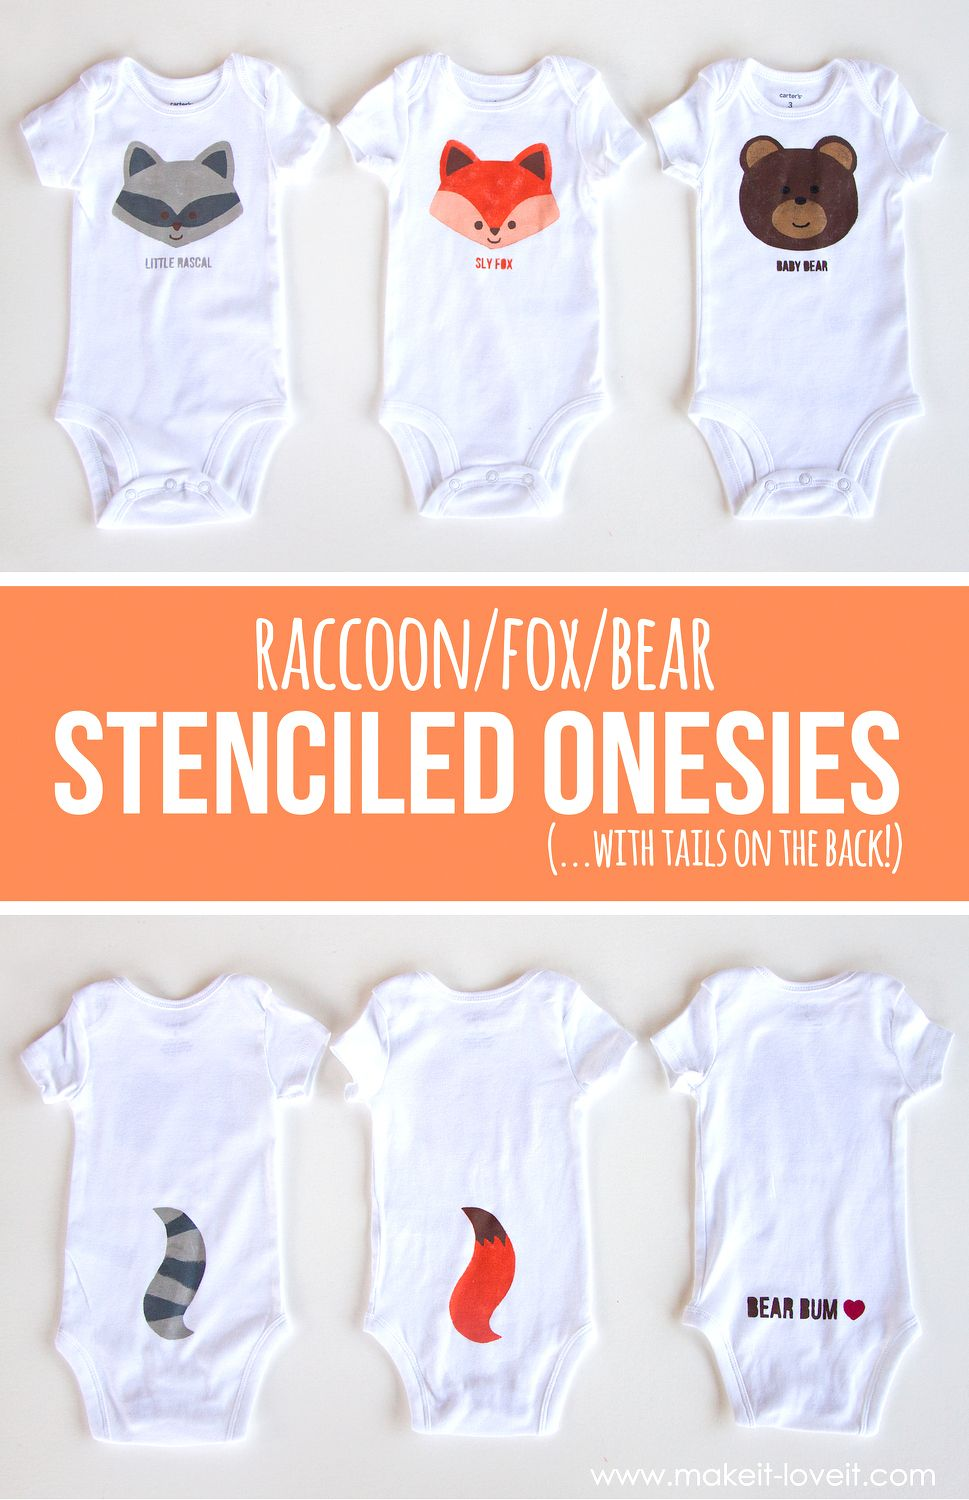 Foxbearraccoon Diy Stenciled Onesies With Tails On The Back